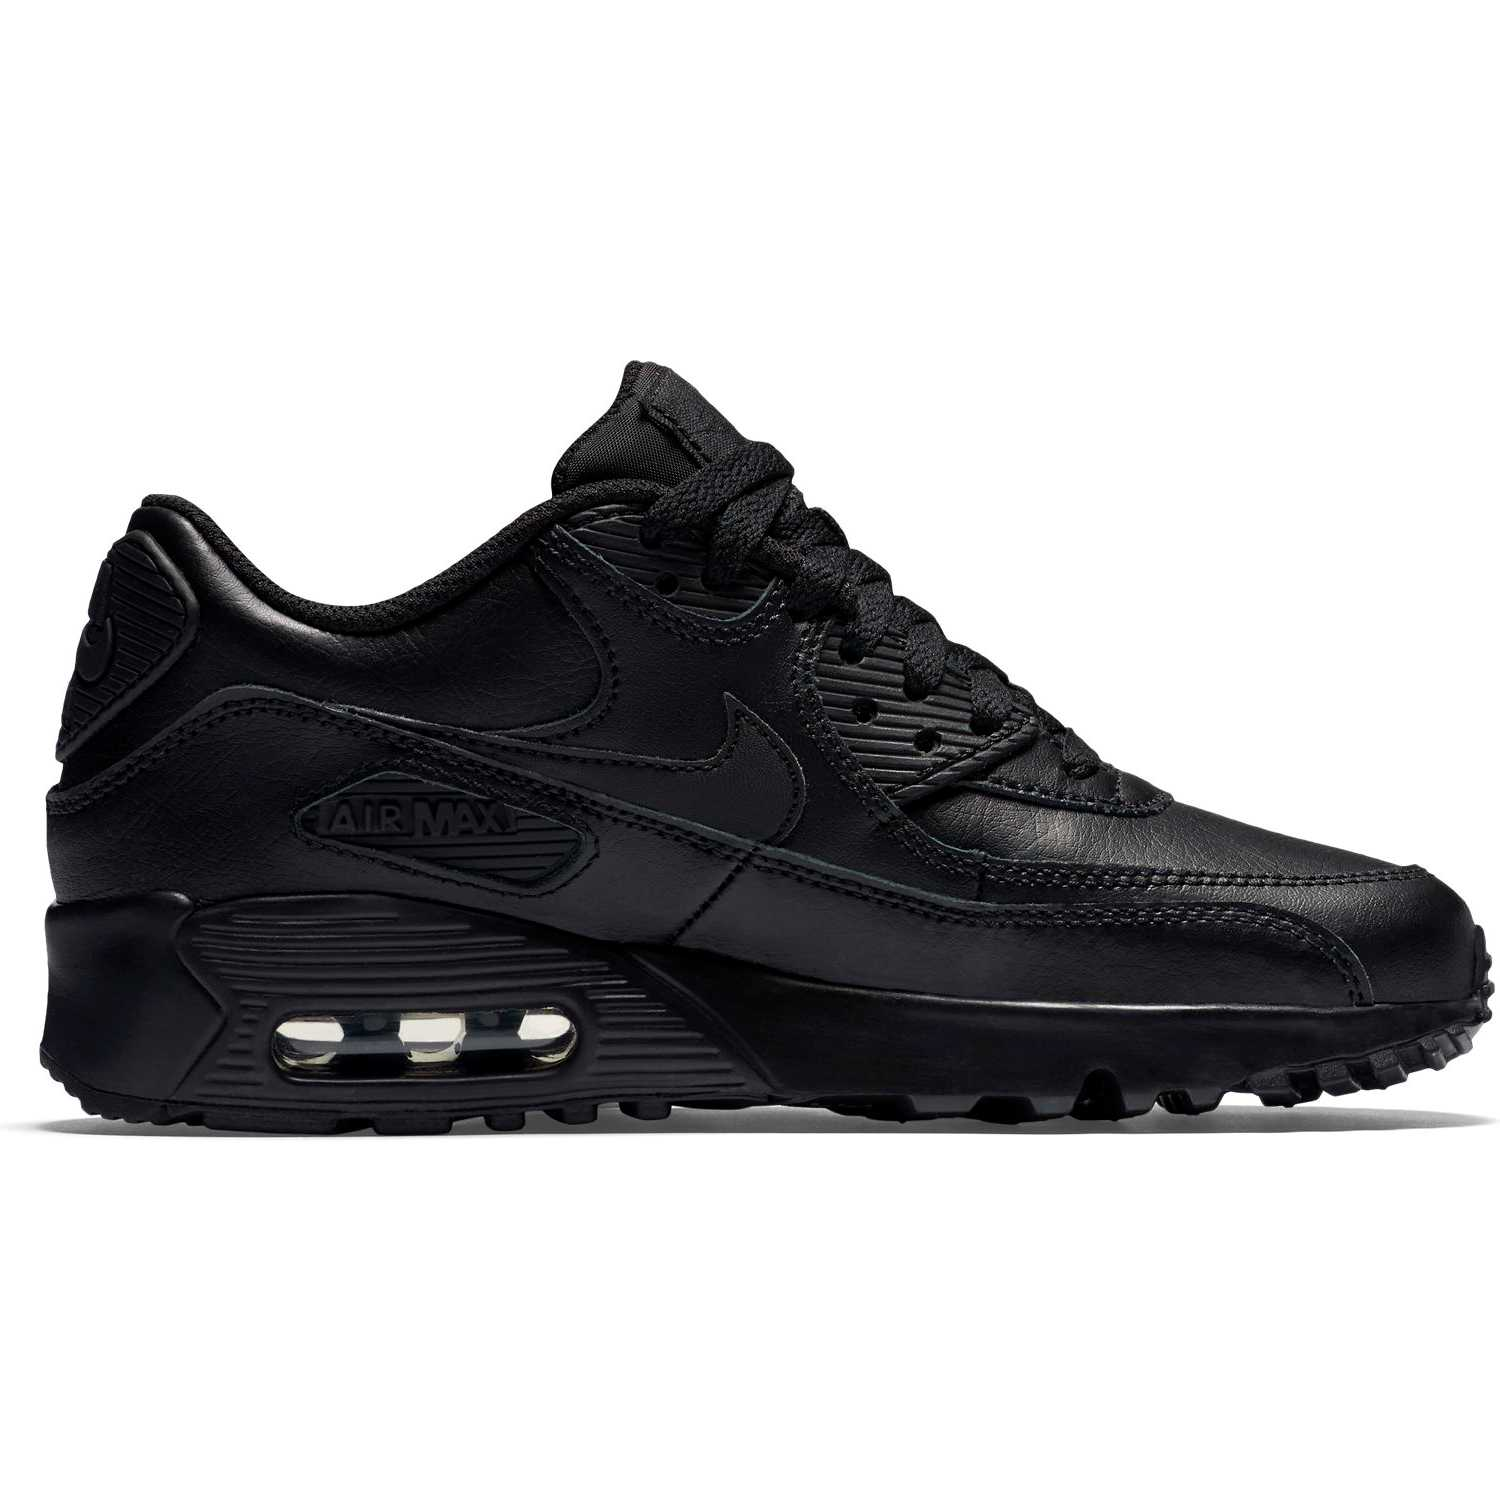 new arrival bf546 caba3 BUTY JUNIOR LIFESTYLE NIKE AIR MAX 90 LEATHER CZARNE 833412-001 ...